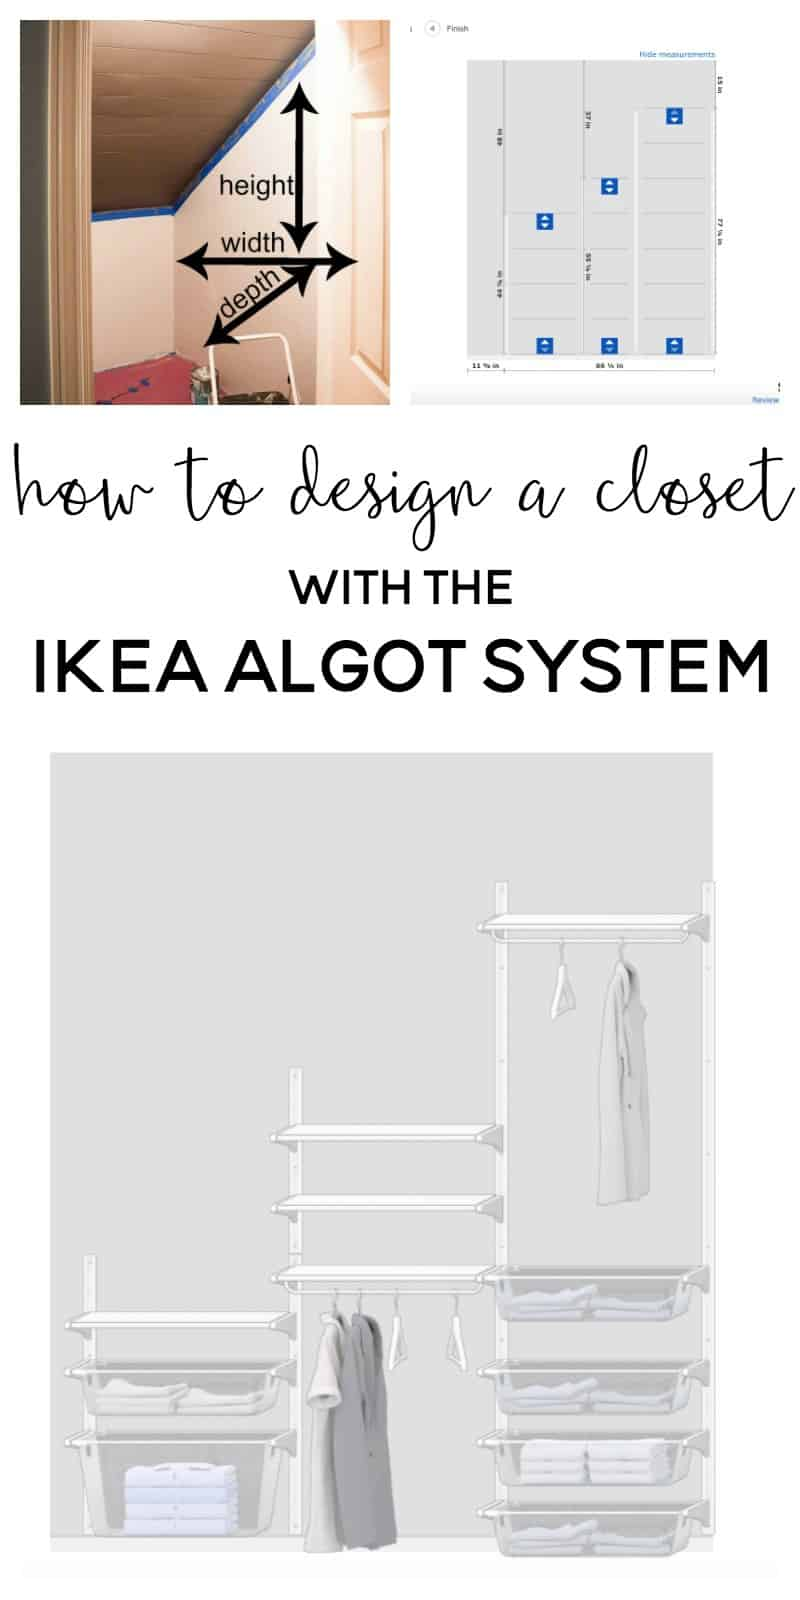 Ikea System One Room Challenge Week 3 Designing The Ikea Algot Closet System